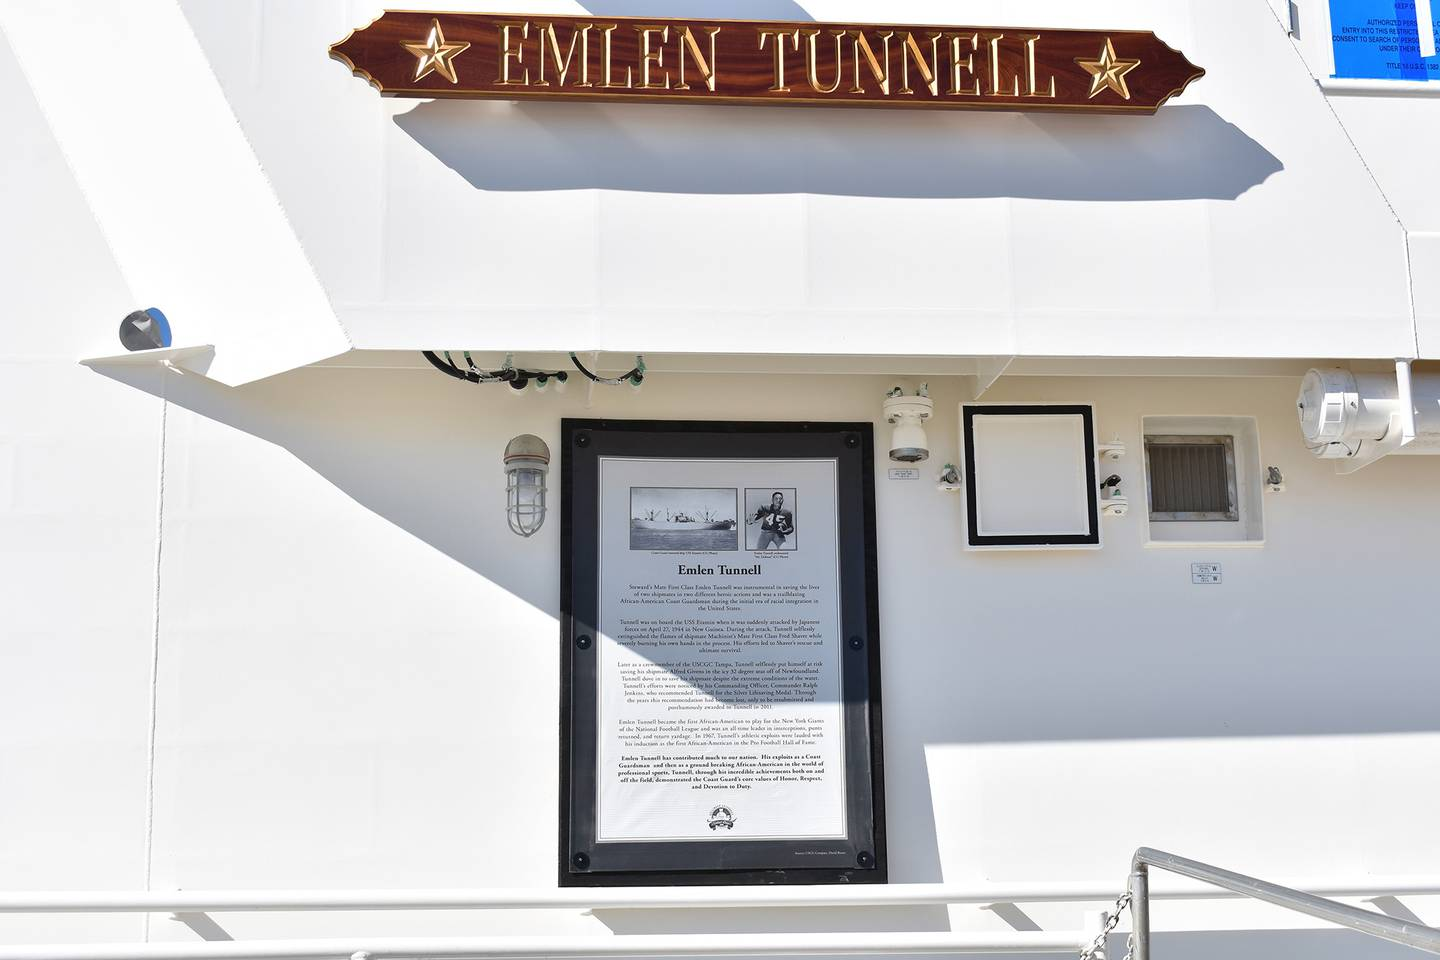 This undated photo provided by the United States Coast Guard shows a name plate and tribute plaque for Emlen Tunnell on a U.S. Coast Guard cutter docked in Bollinger Shipyard, Lockport, La.